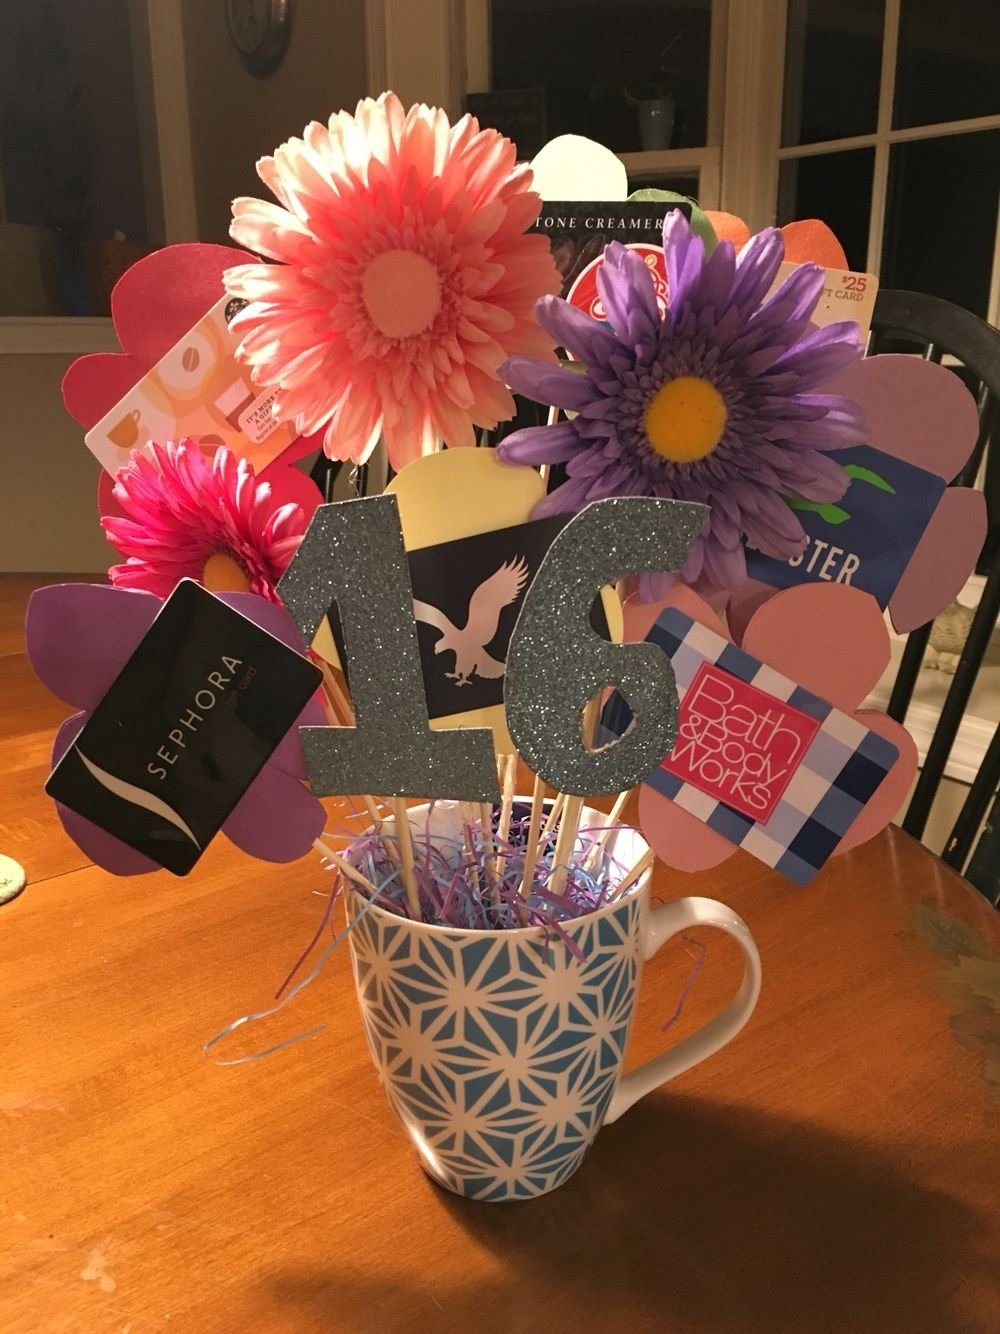 10 Stylish Sweet 16 Gift Ideas For Niece sweet 16 gift idea sweet 16 idea pinterest sweet 16 gifts